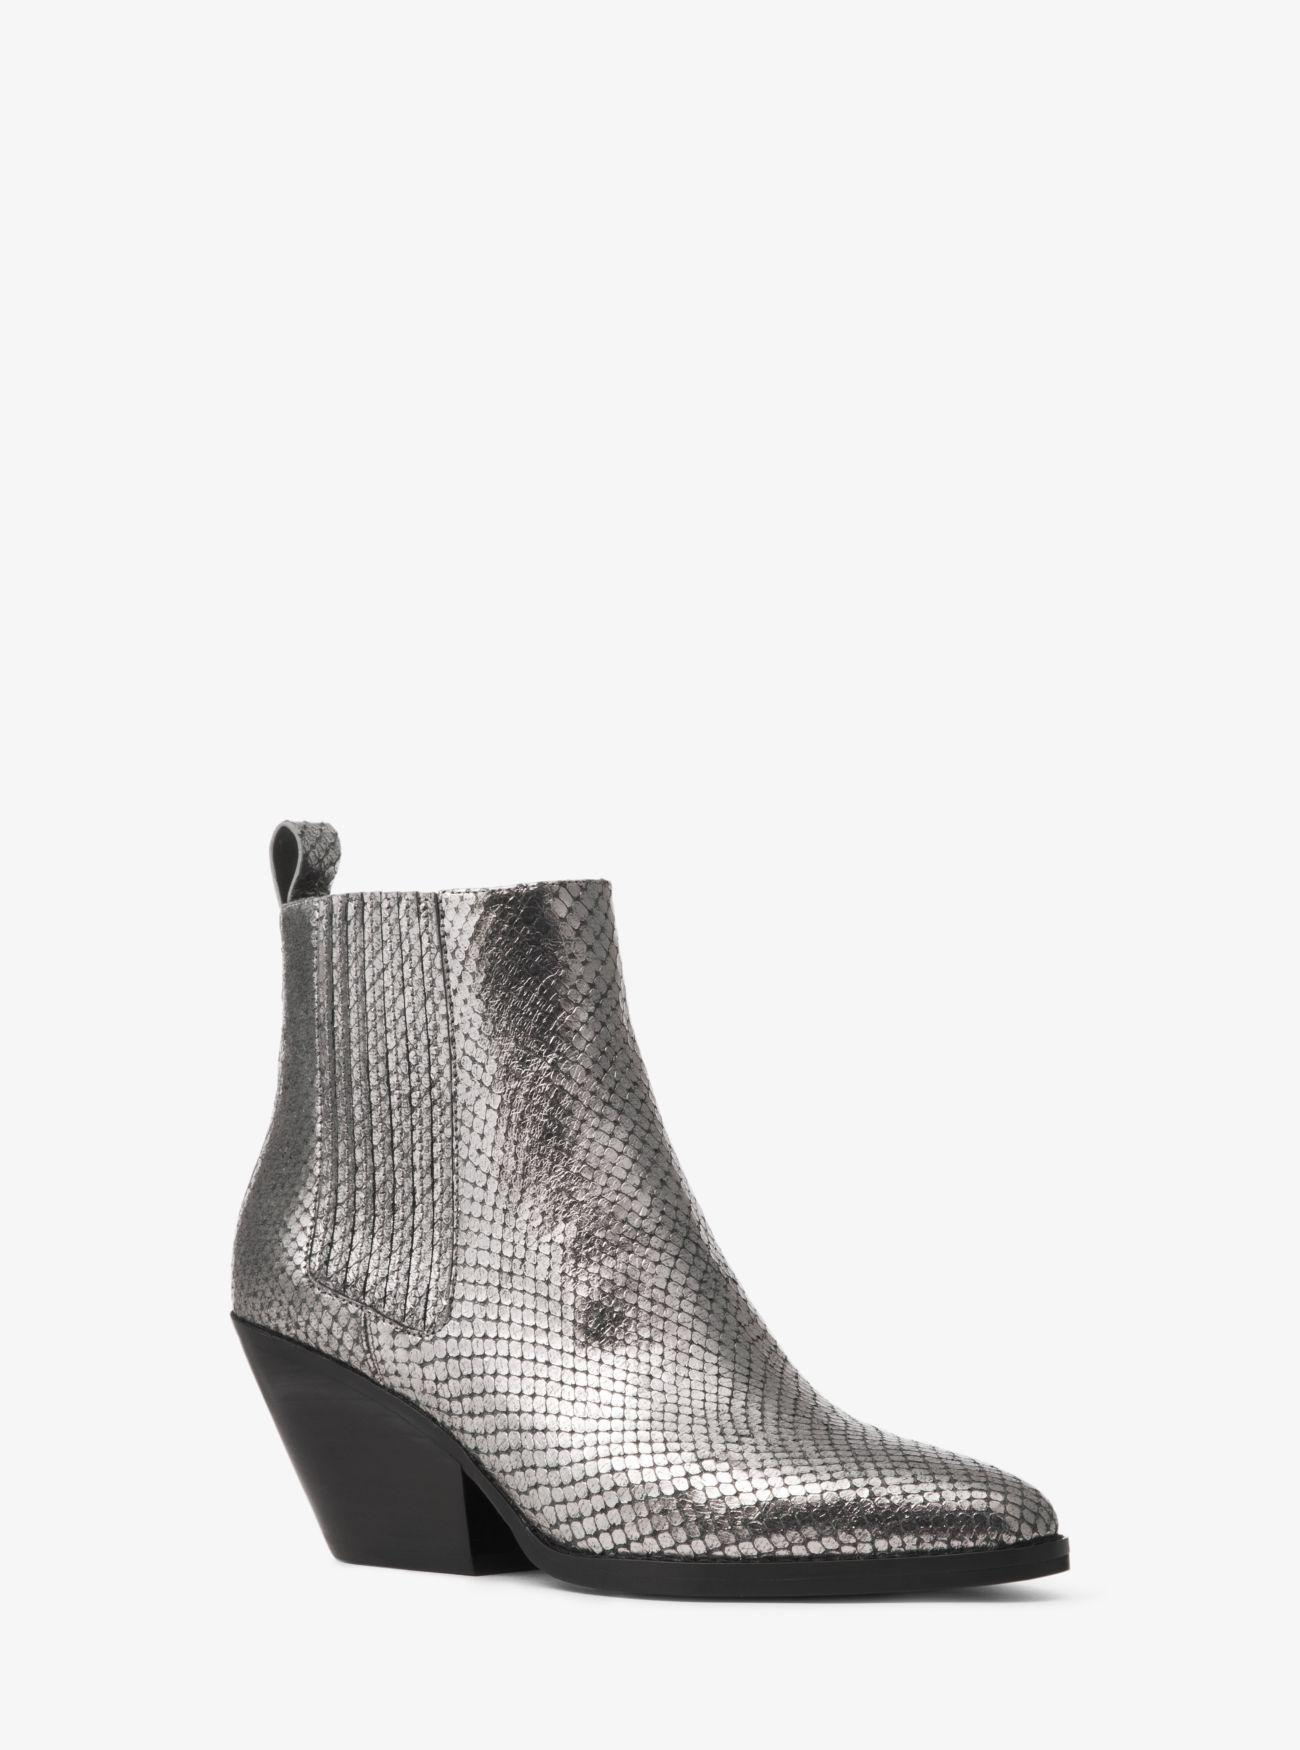 768bf02ca3 MICHAEL Michael Kors. Women s Gray Sinclair Metallic Embossed Leather Ankle  Boot